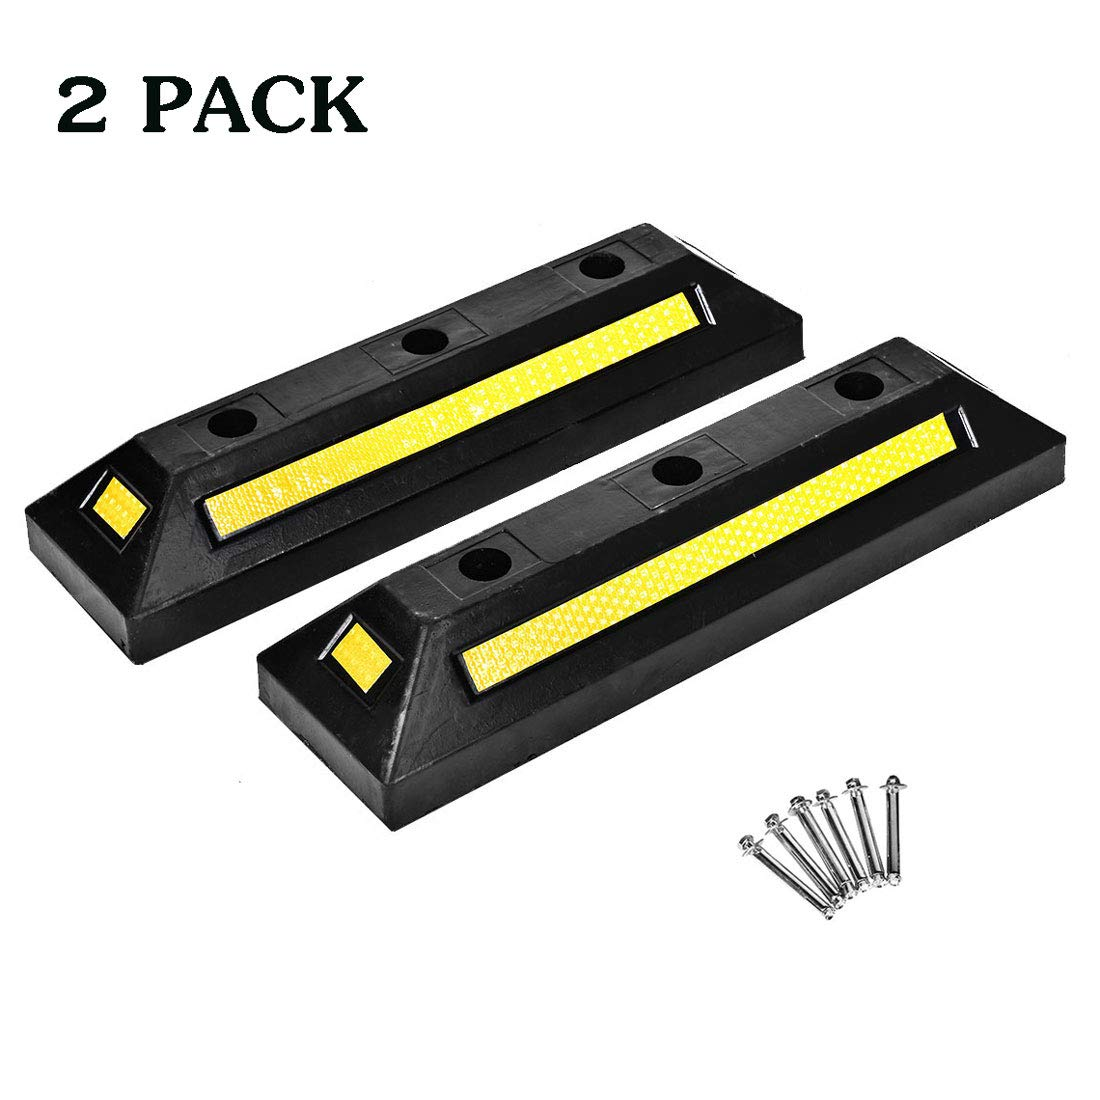 Cozylifeunion 2 Pack Heavy Duty Rubber Parking Blocks Curb Guide Car Garage Wheel Stop Stoppers for Car, Truck, RV, Trailer, and Garage